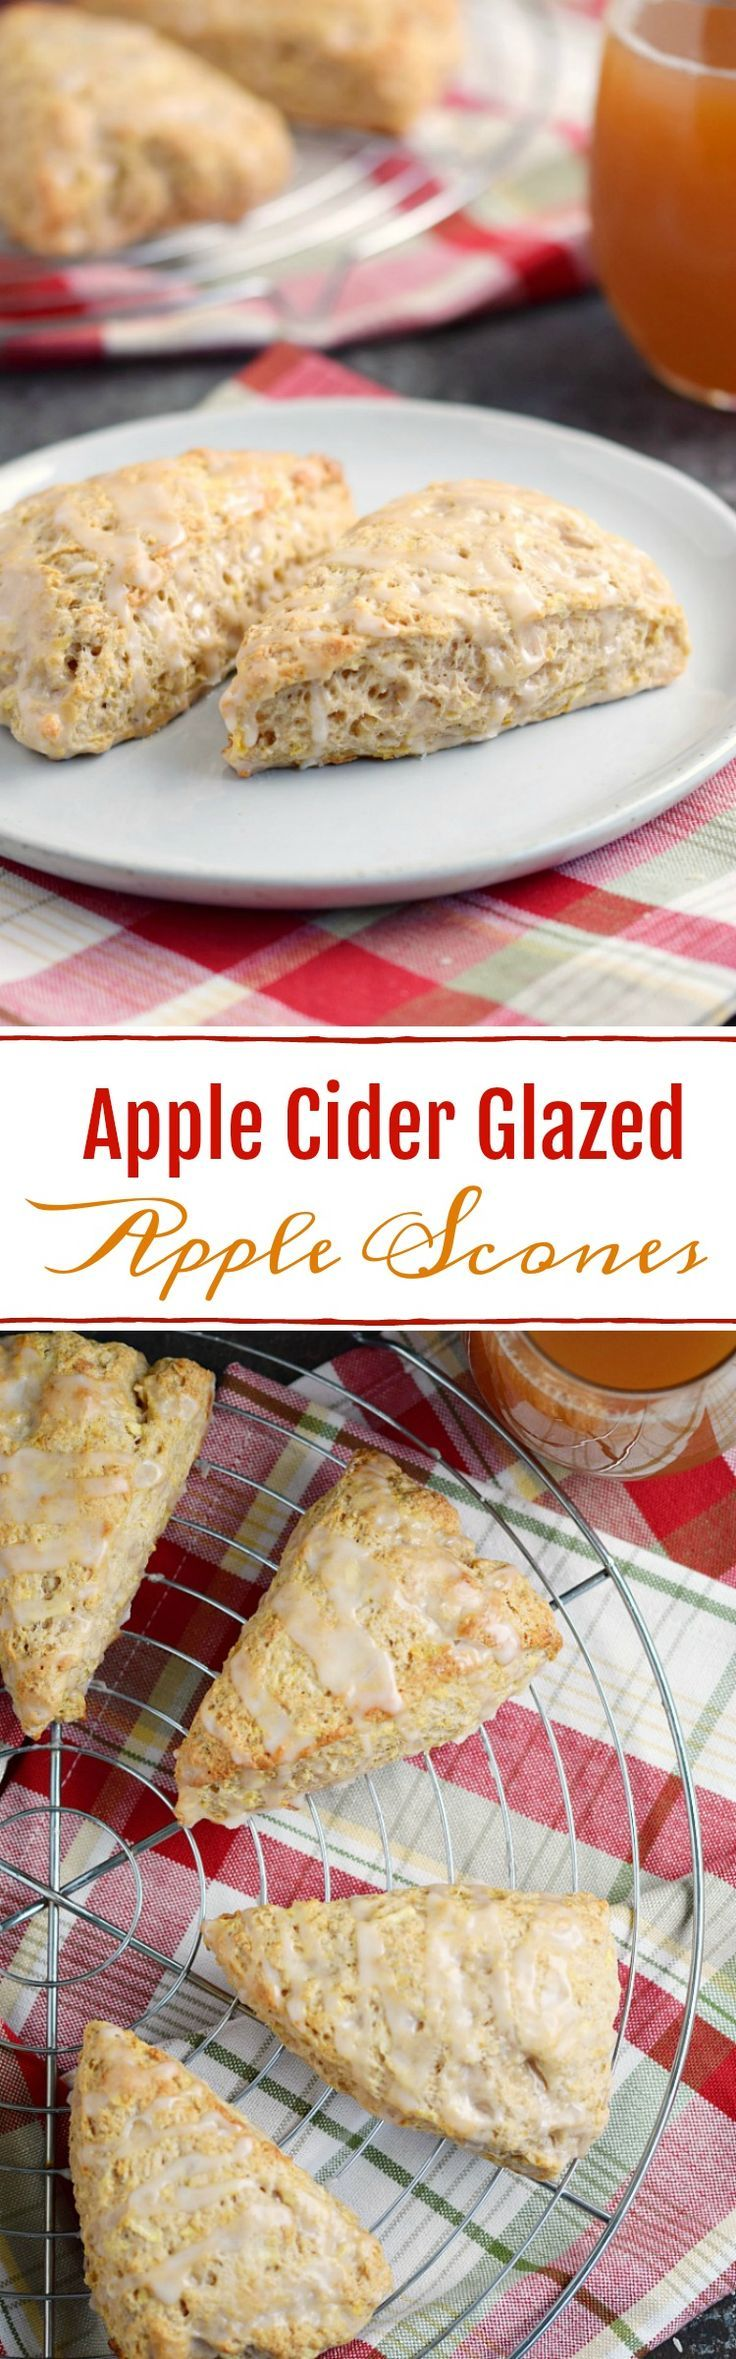 These fluffy and delicious Apple Cider Glazed Apple Scones are an easy morning breakfast, or perfect for an afternoon treat! COPYRIGHT ©️️ 2017 COOKING WITH CURLS